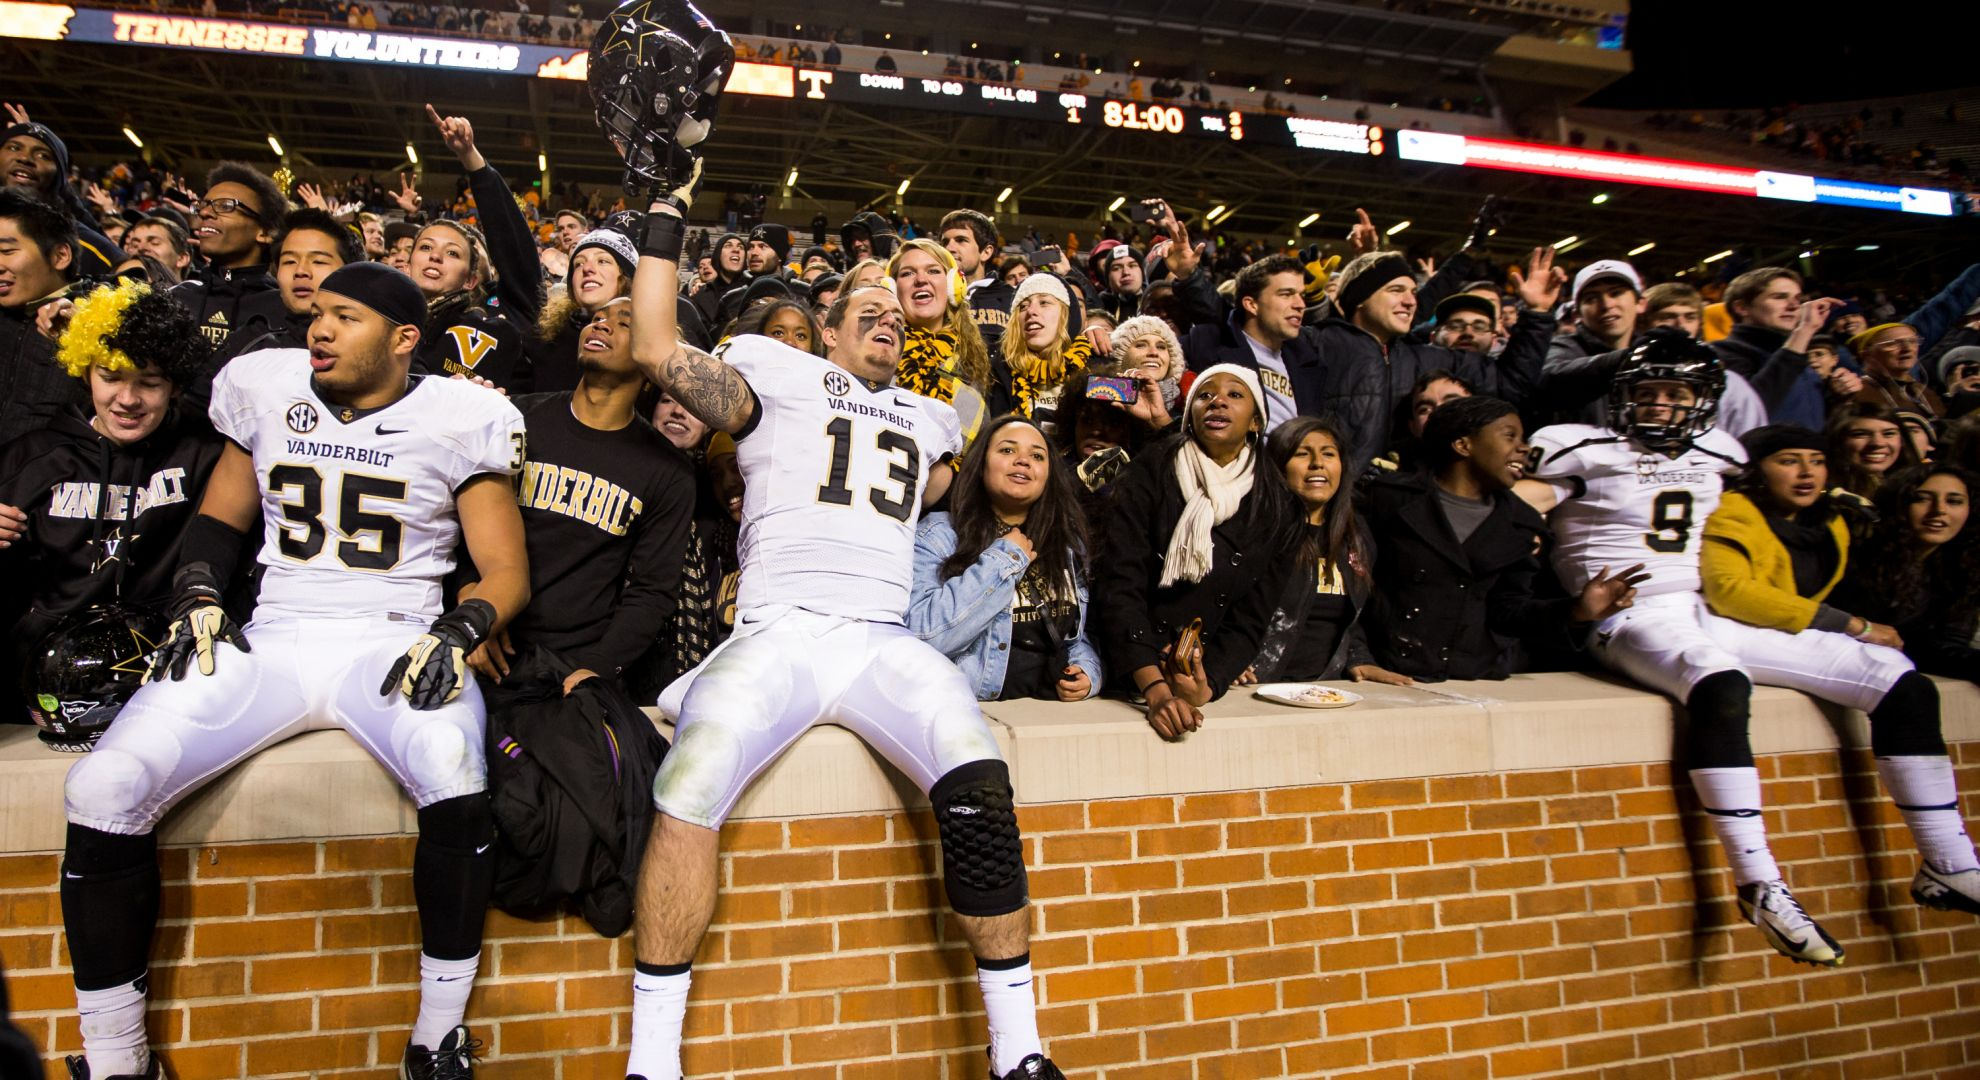 Commodore players celebrate with fans after defeating Tennessee.